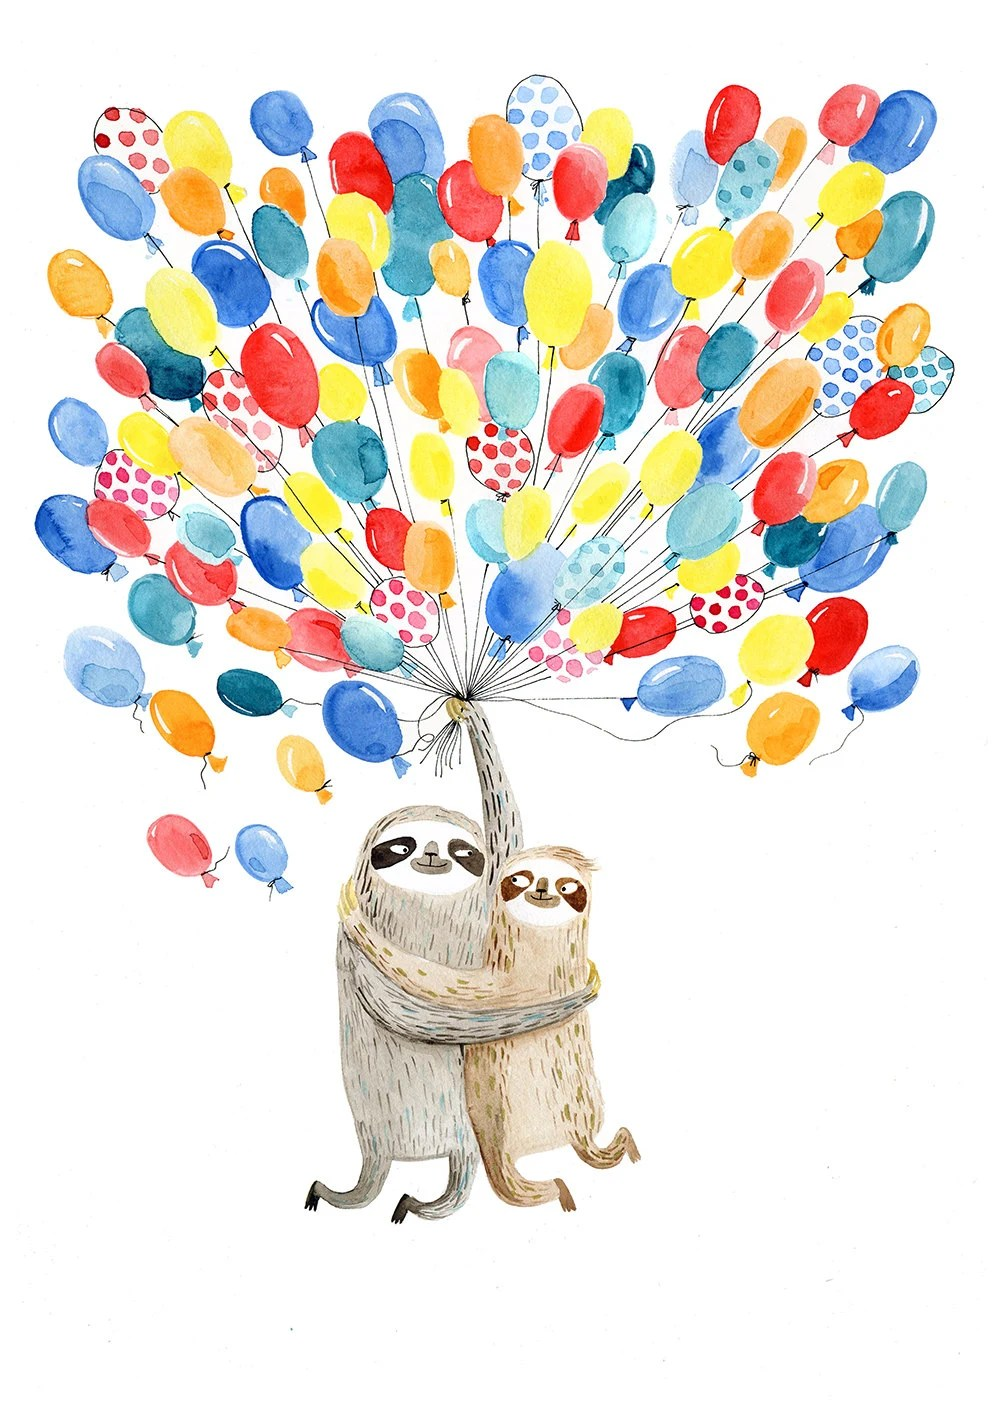 Super Duper Cute Wallpapers Flying Balloon Sloths A4 Print Sloth Couple In By Surfingsloth